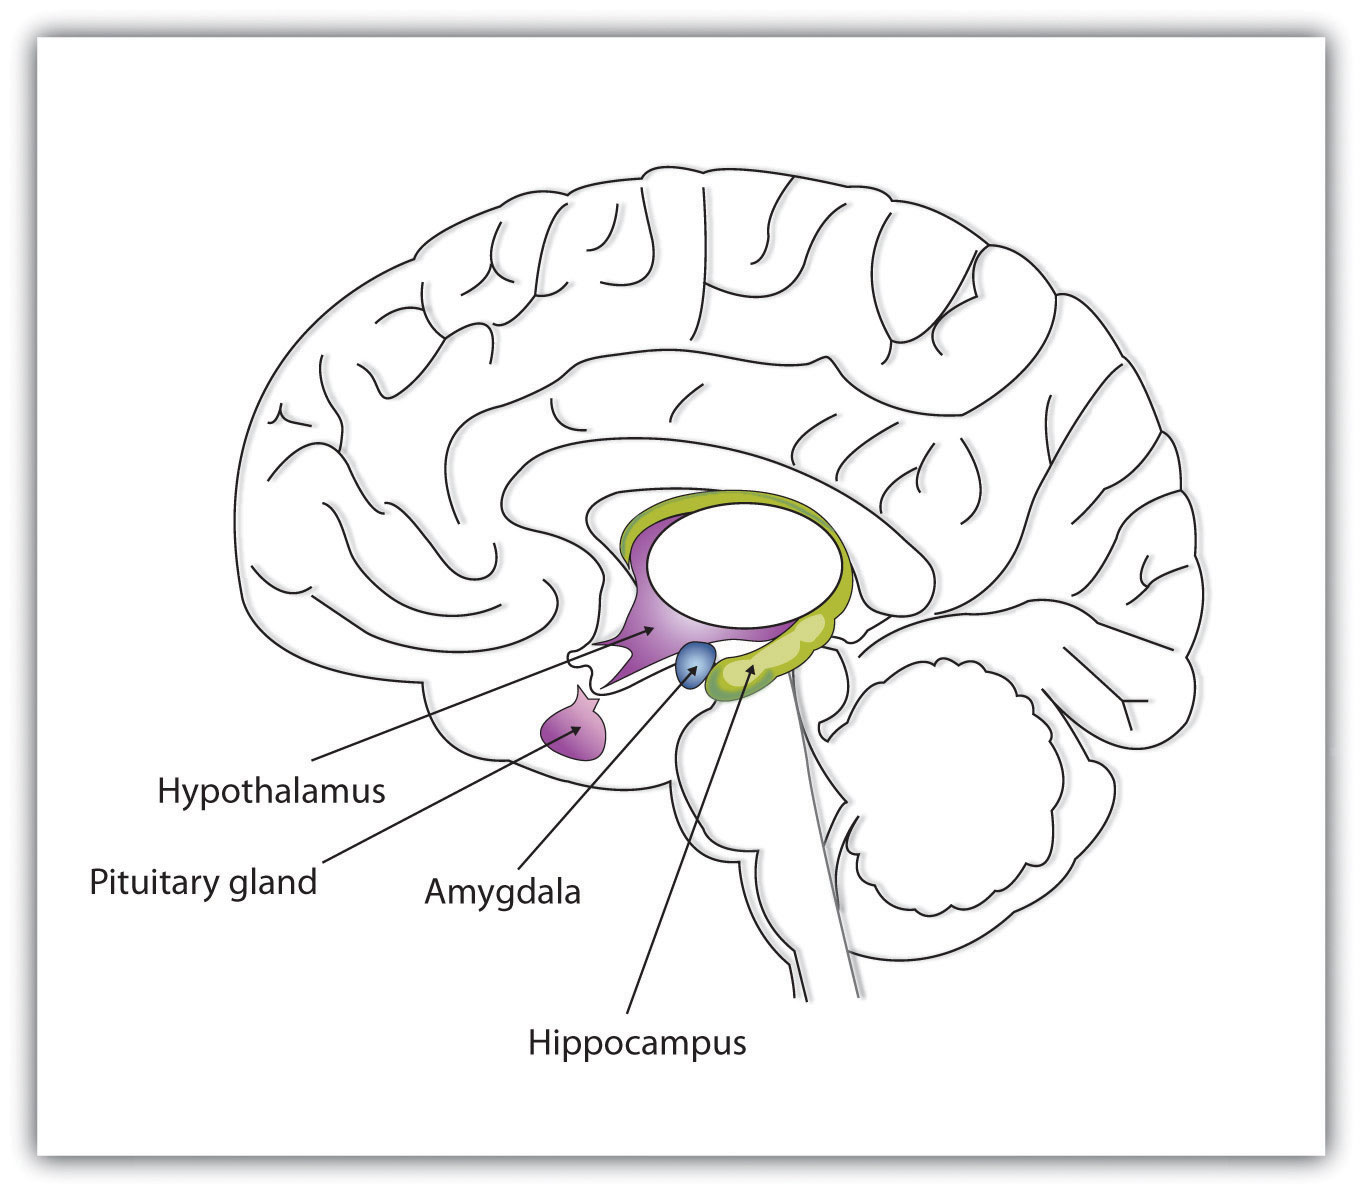 The limbic system is a part of the brain that includes the amygdala. The amygdala is an important regulator of emotions